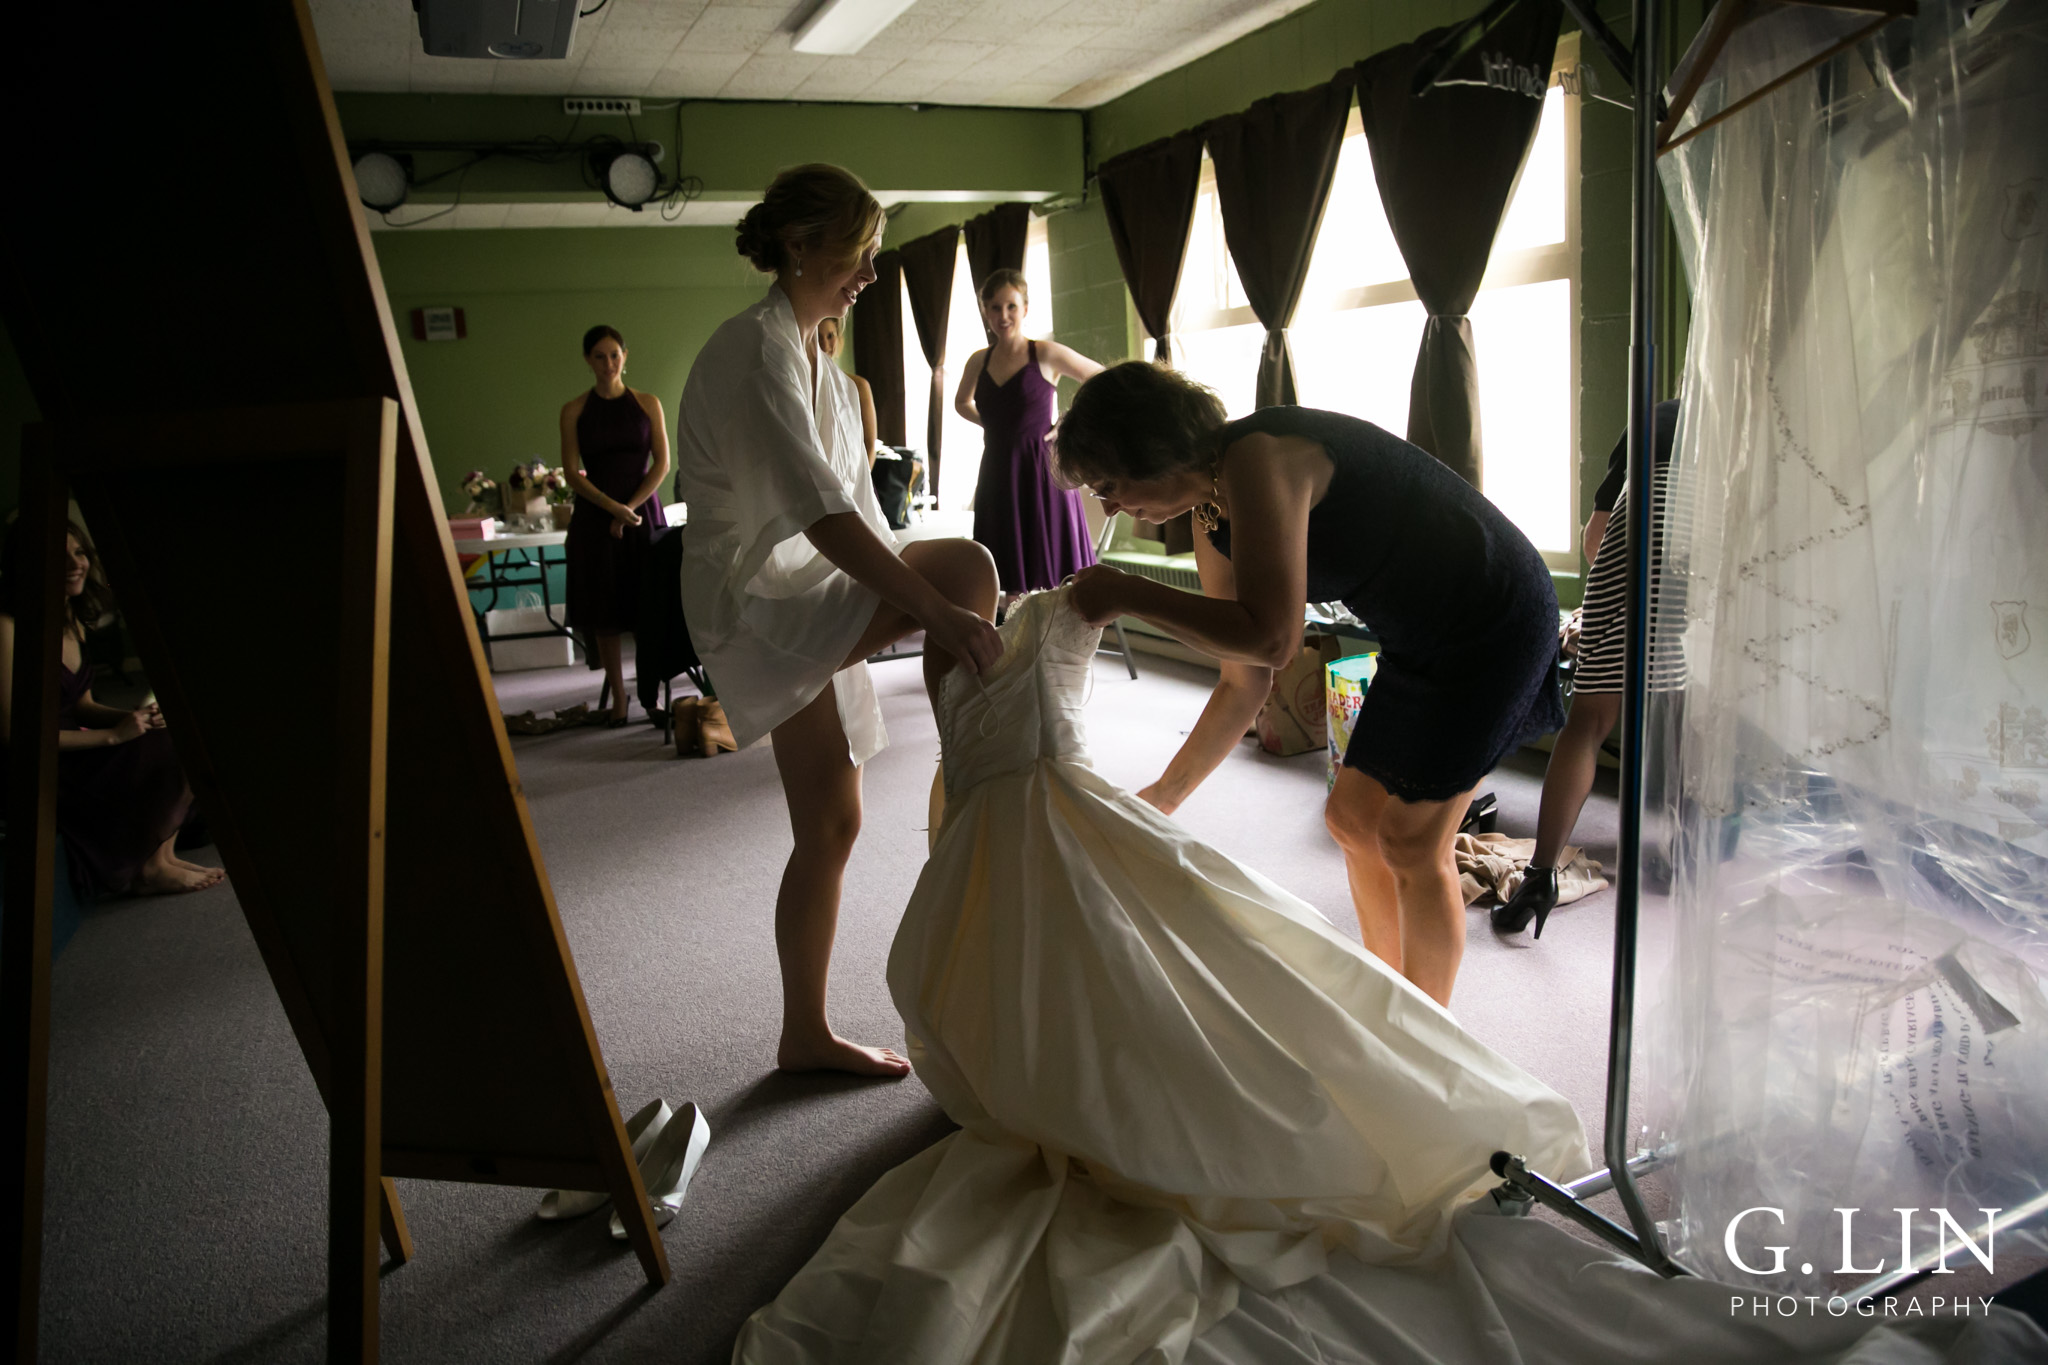 Raleigh Wedding Photographer | G. Lin Photography | Mom helping daughter get into wedding dress | Photo in color